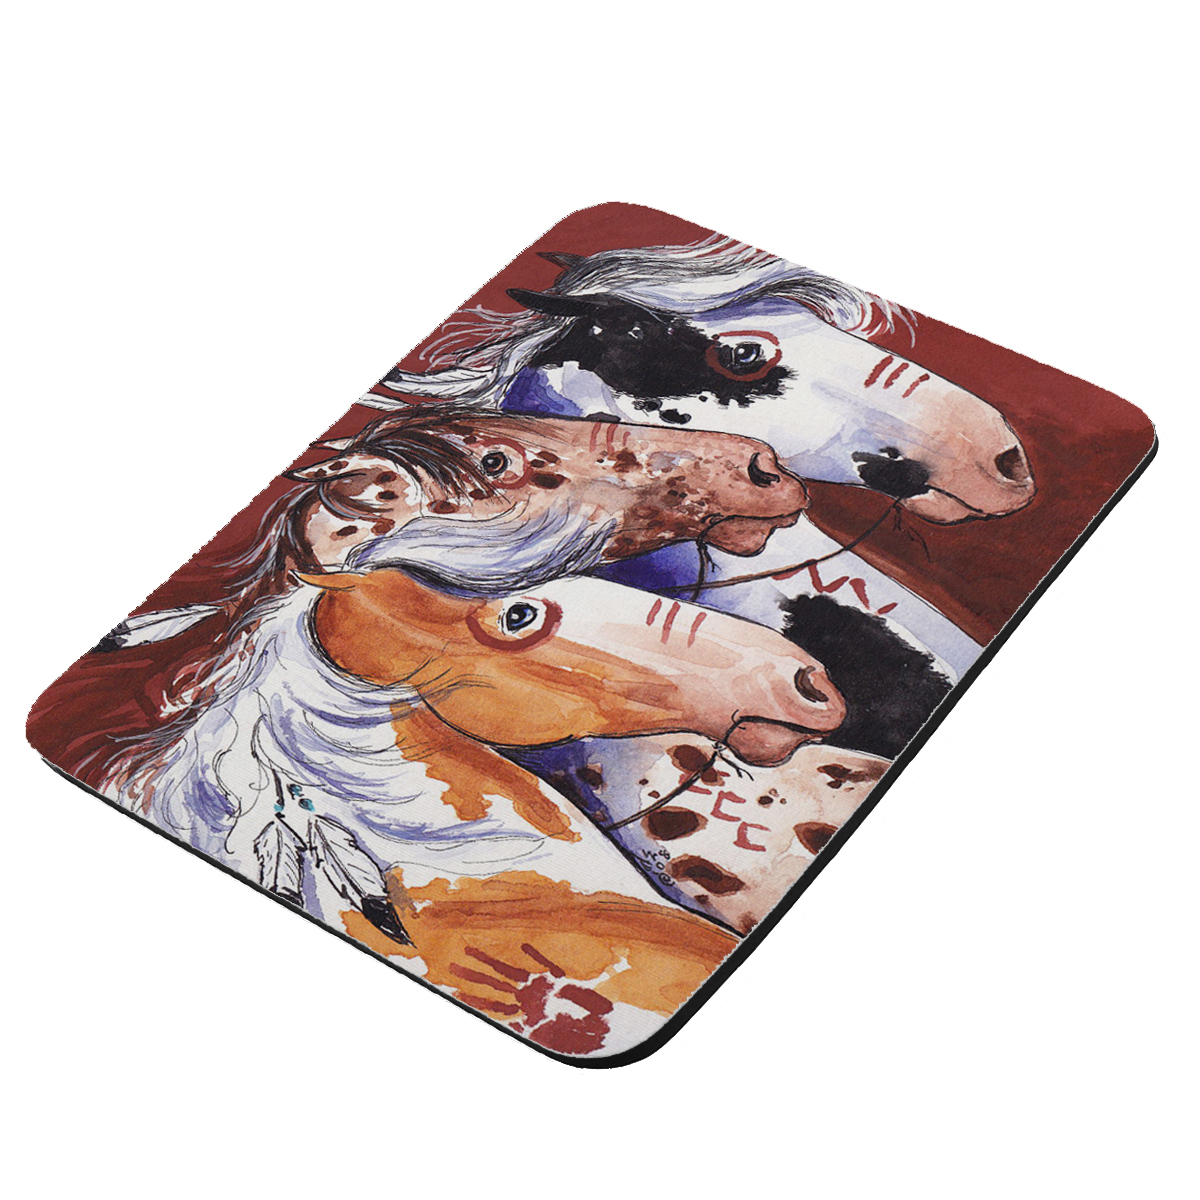 Pinto and Appaloosa Indian War Ponies Horse Art by Denise Every - KuzmarK Mousepad / Hot Pad / Trivet